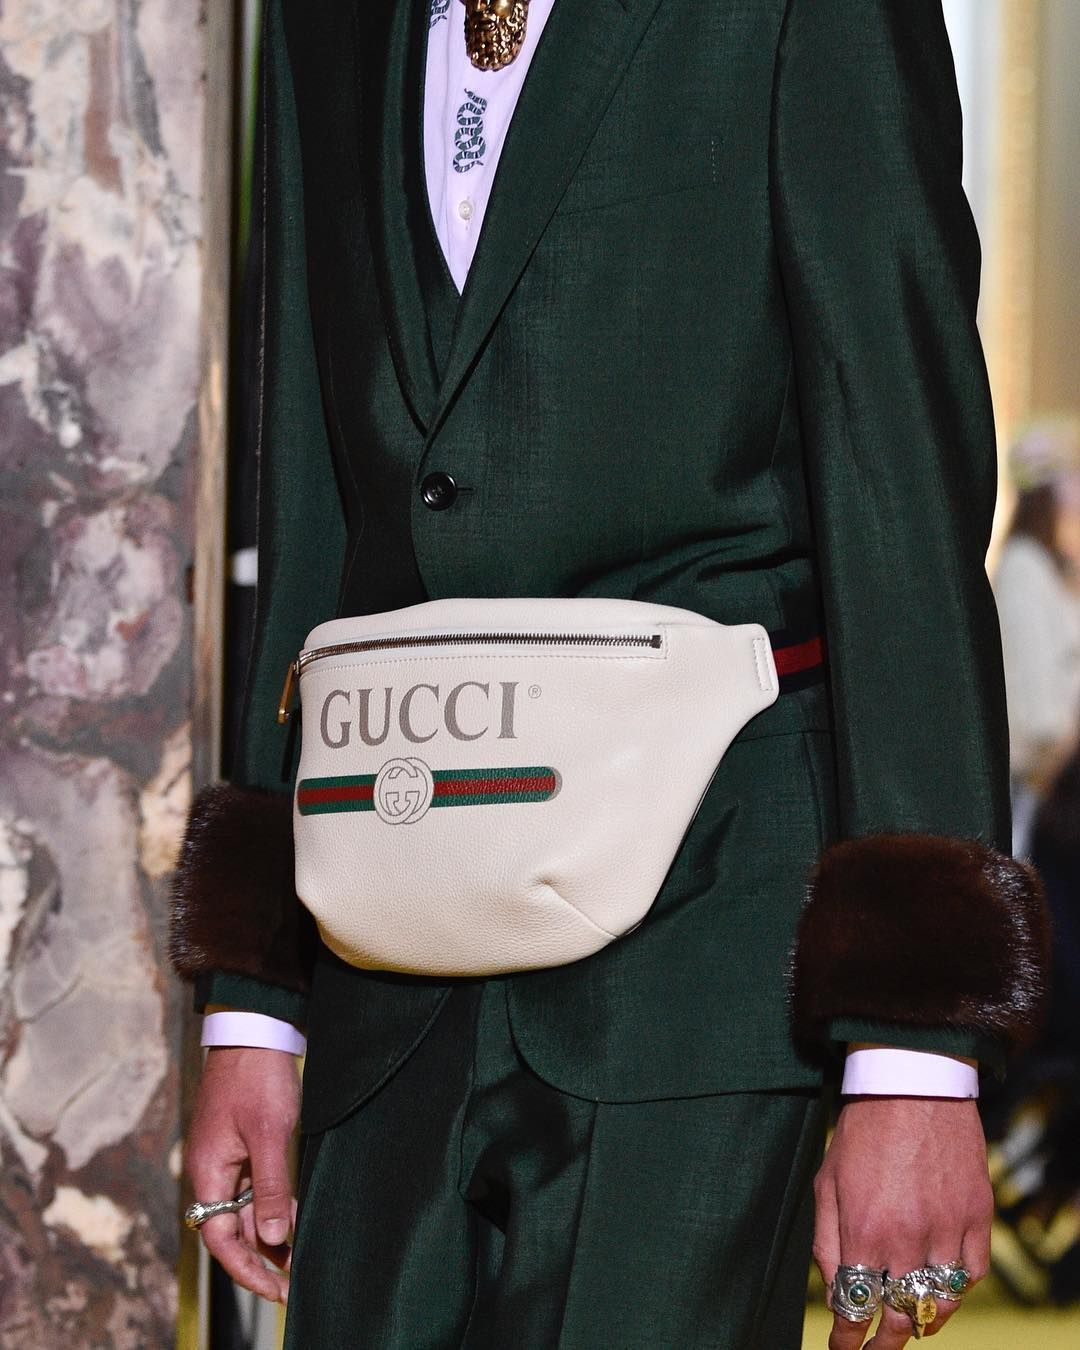 71dd6aa0cc3 Gucci goes normcore  Alessandro Michele presented an upgraded version of a  fanny pack in his cruise 2018 show.  GucciCruise18  Gucci  GucciSS17 ...